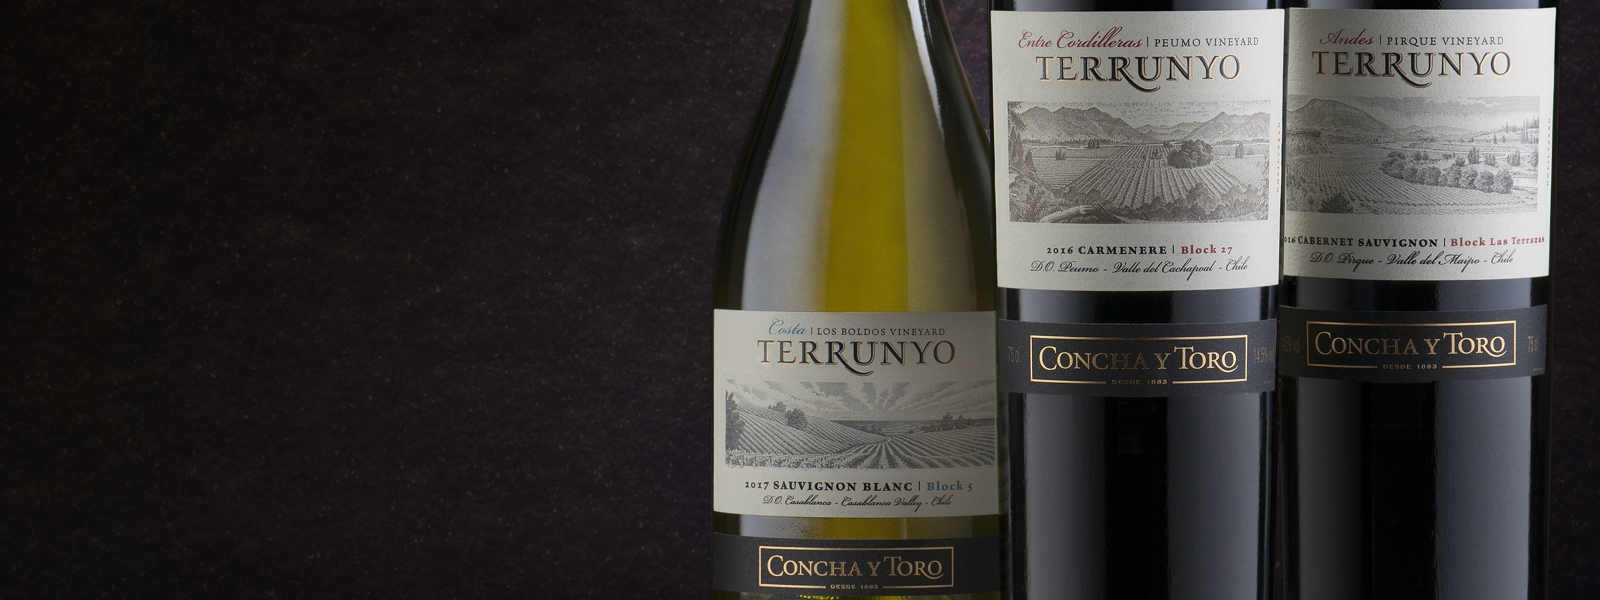 Terrunyo Sauvignon Blanc 2018 named the Best Wine from Casablanca in the 2019 Descorchados